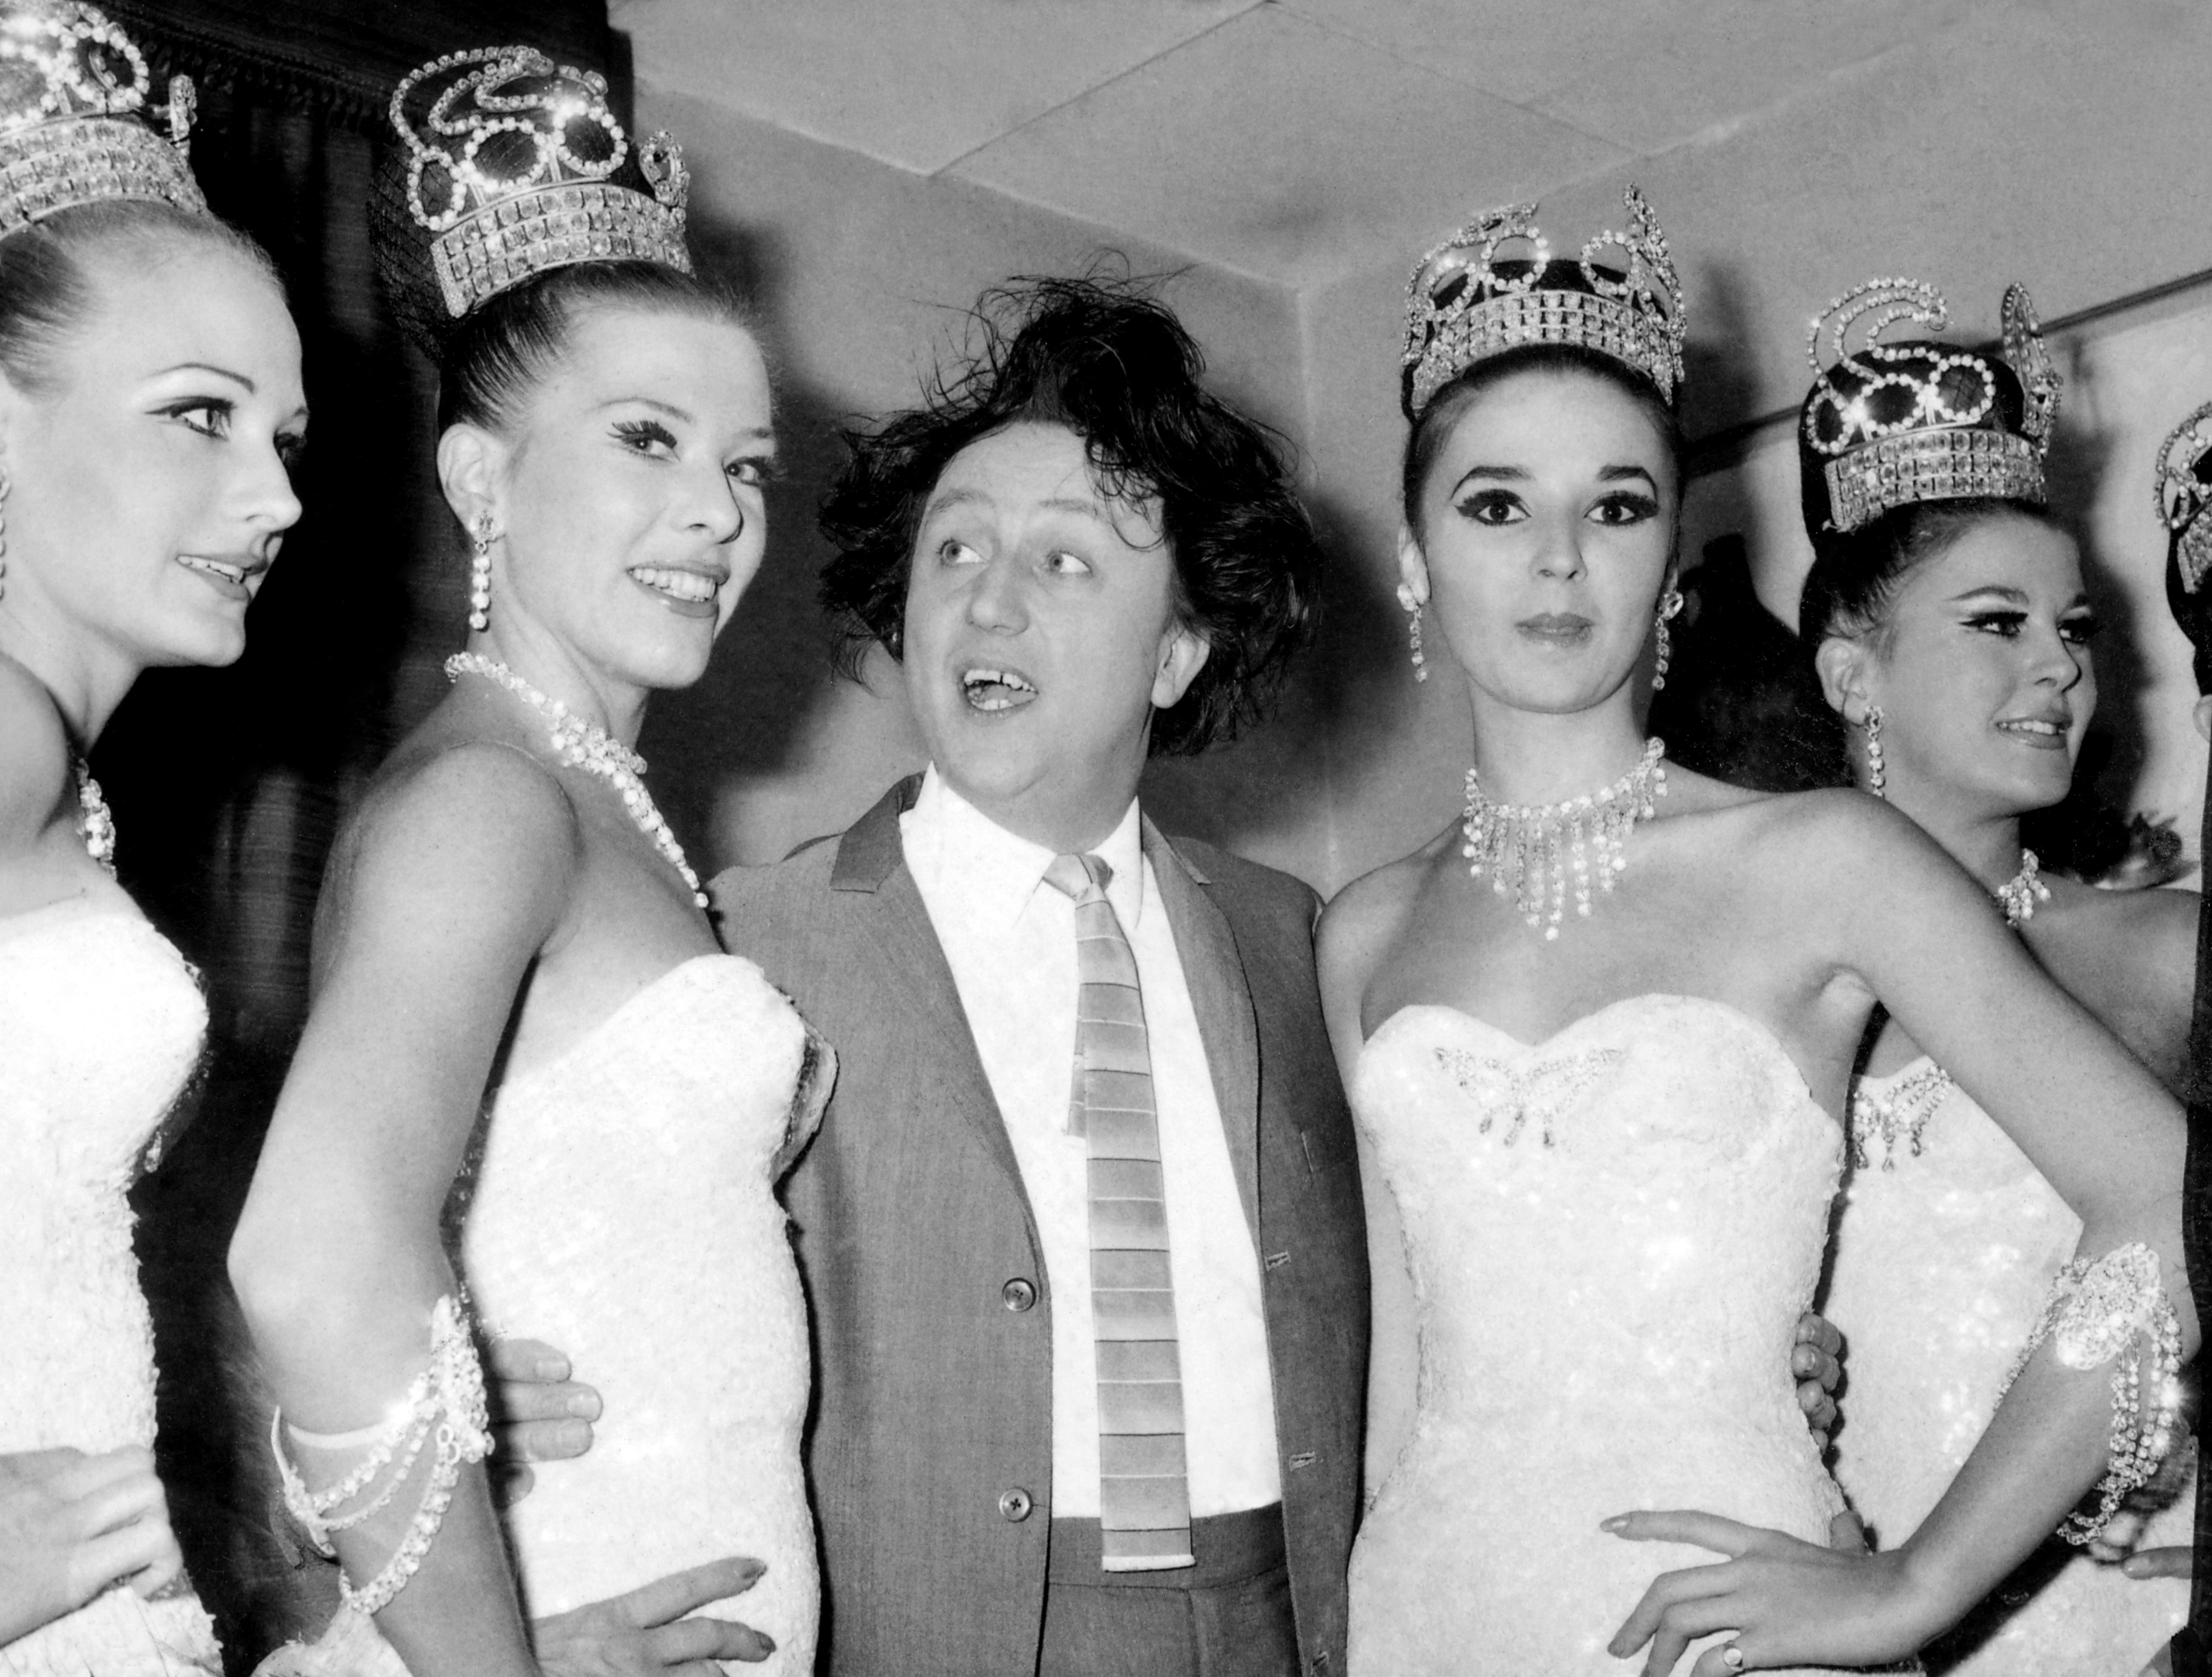 Ken Dodd poses backstage with the Bluebell Girls in 1976 (PA)